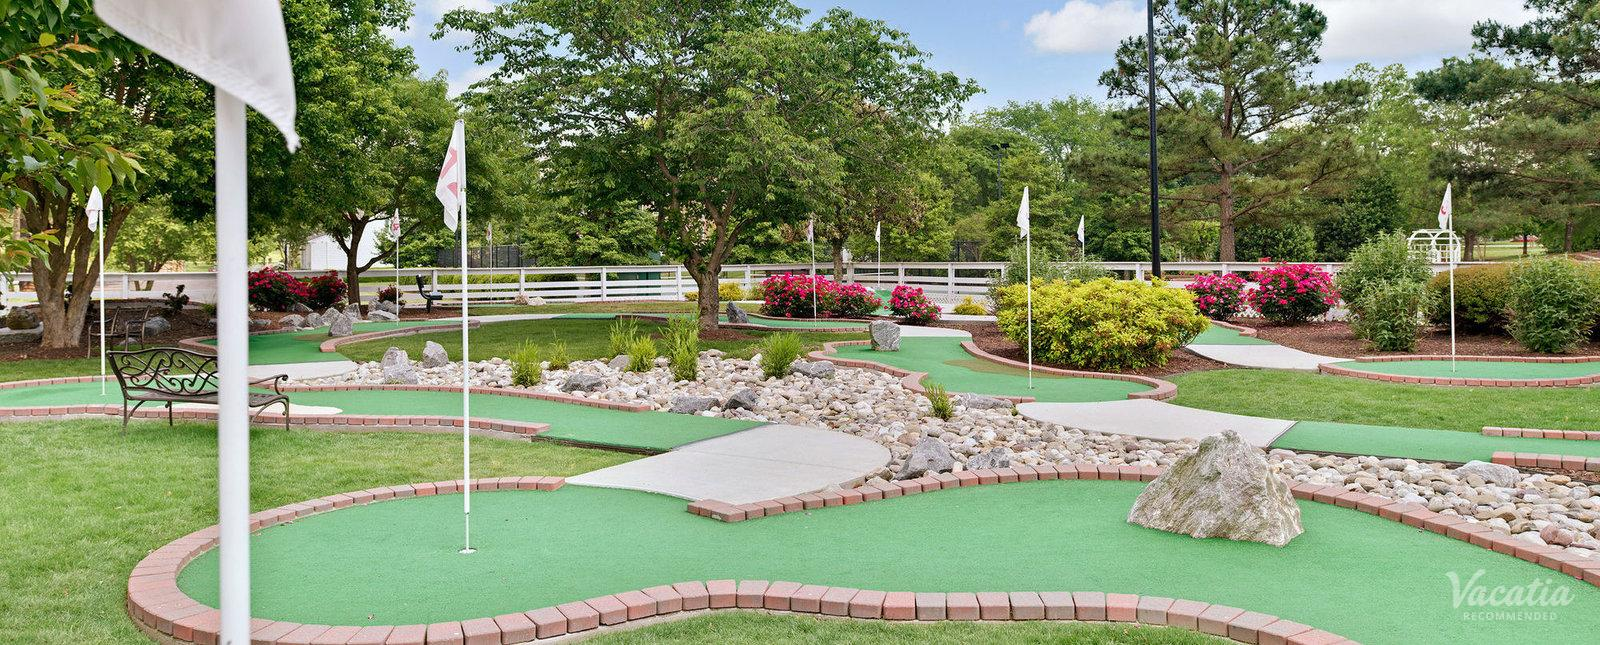 The Historic Powhatan Resort Mini Golf